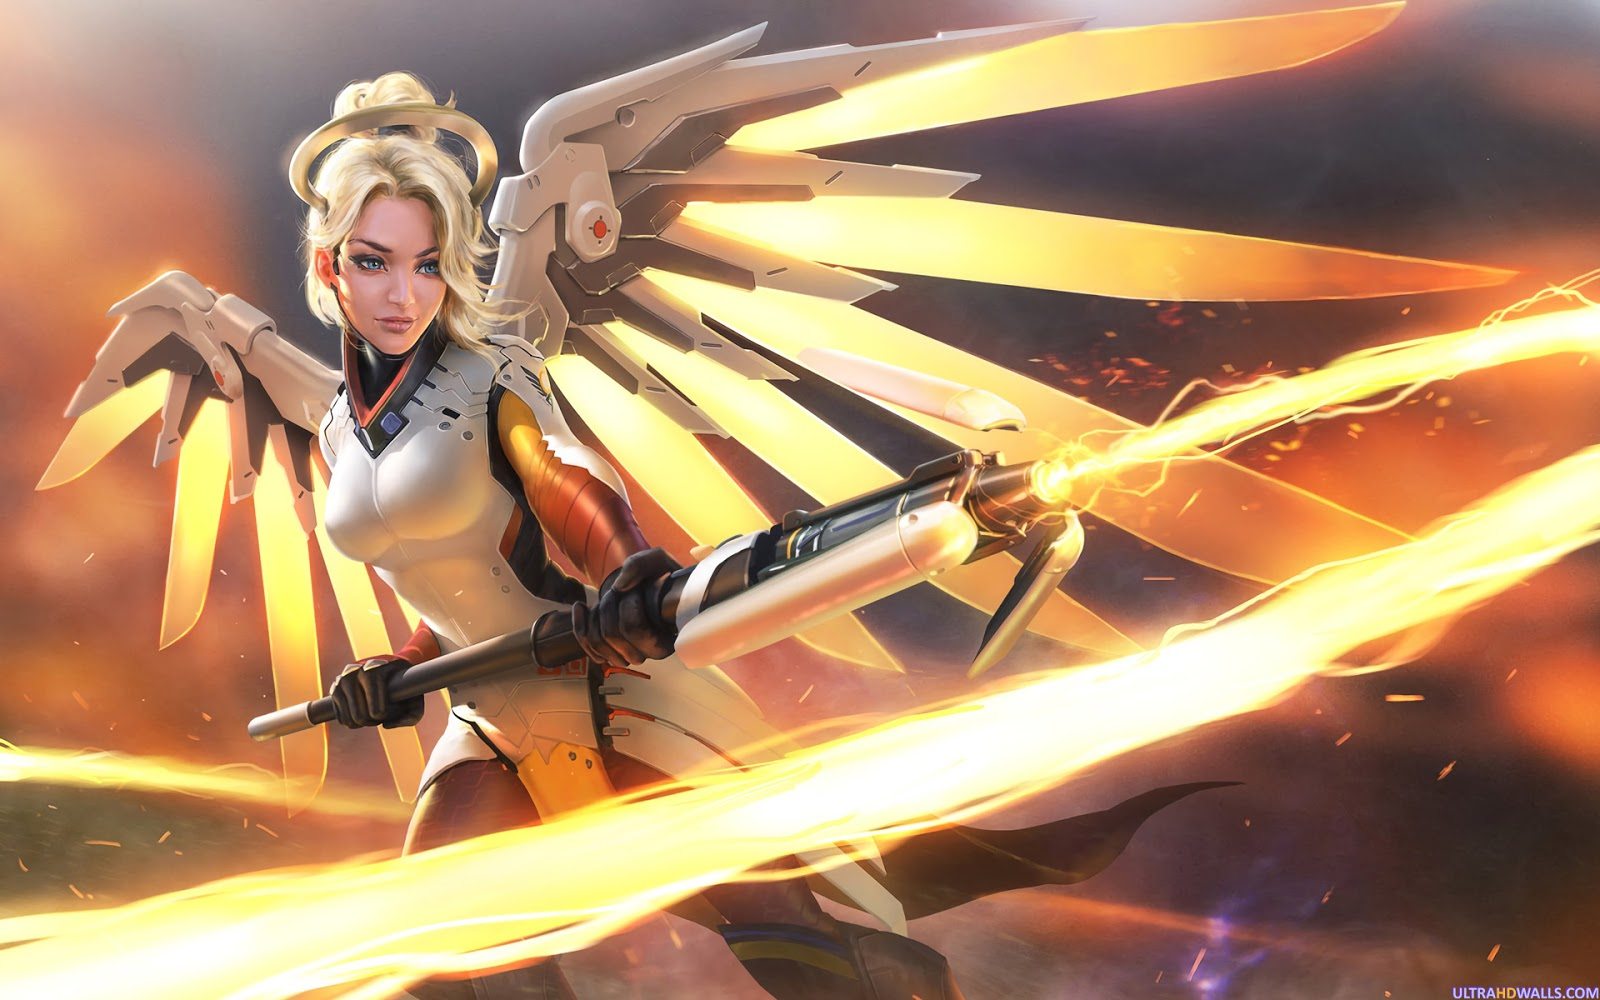 Overwatch Game Hd Wallpapers Hd Wallpaper Jos